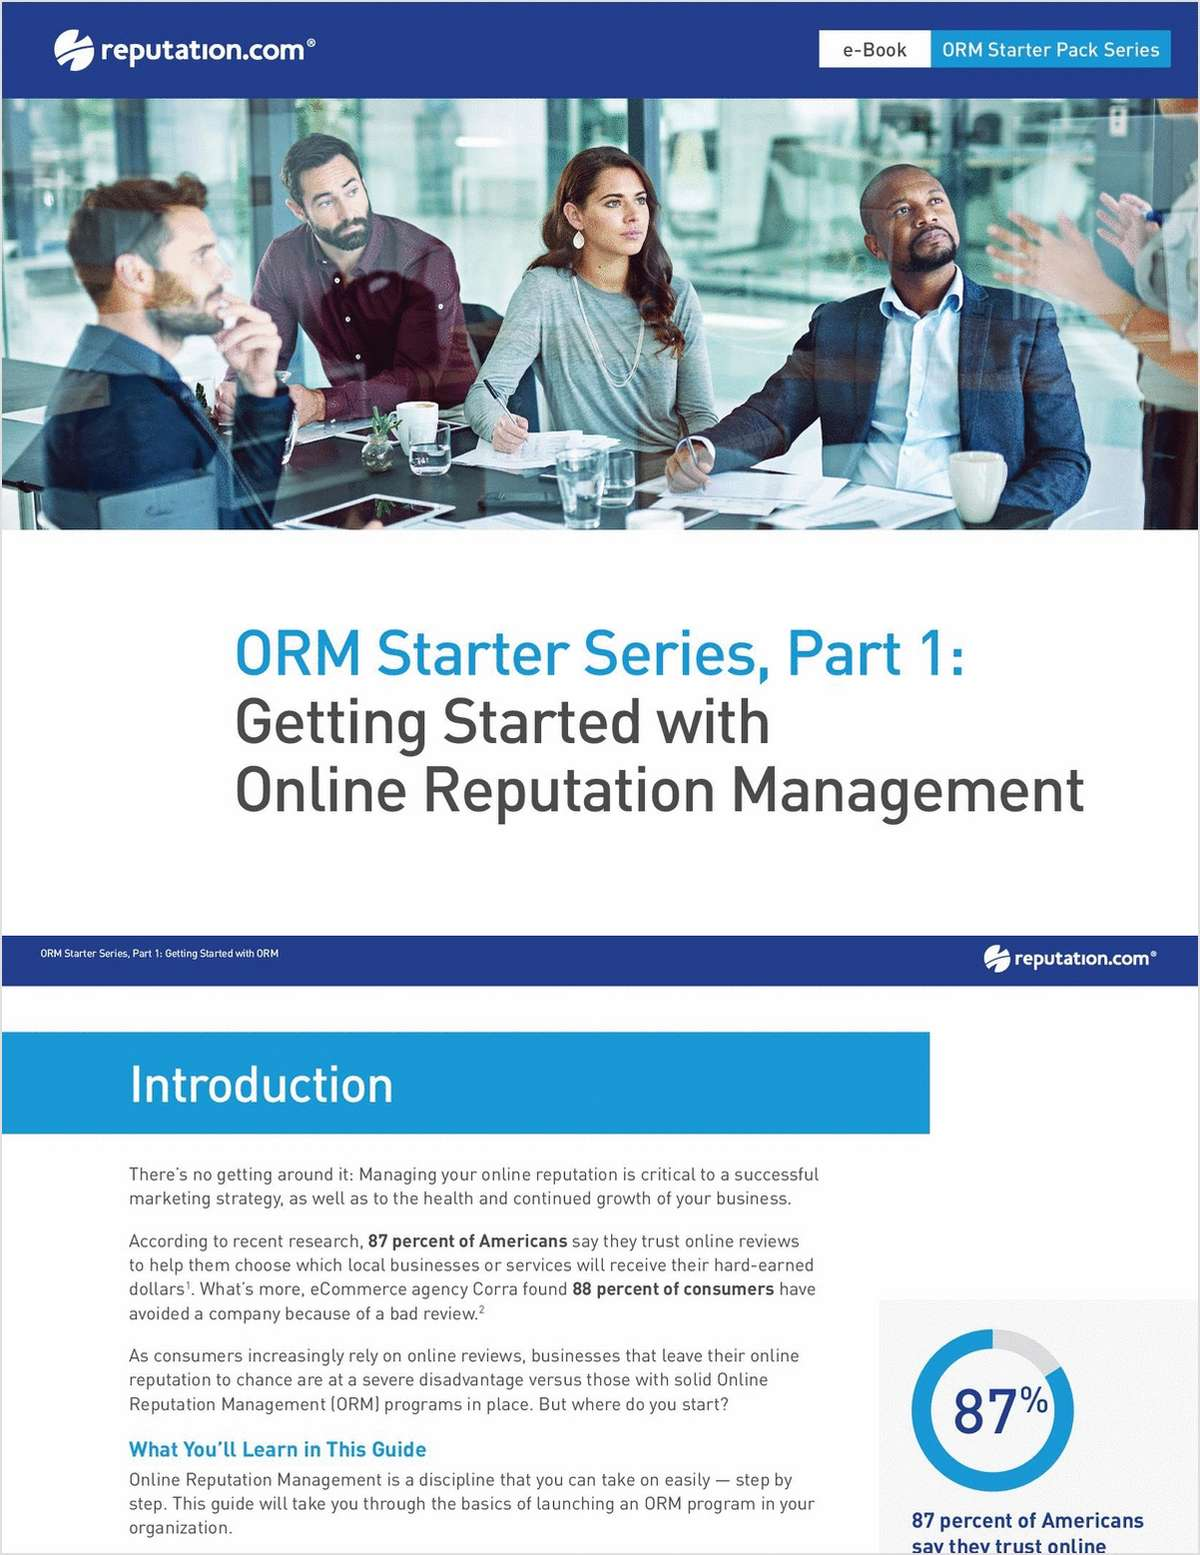 Getting Started with Online Reputation Management